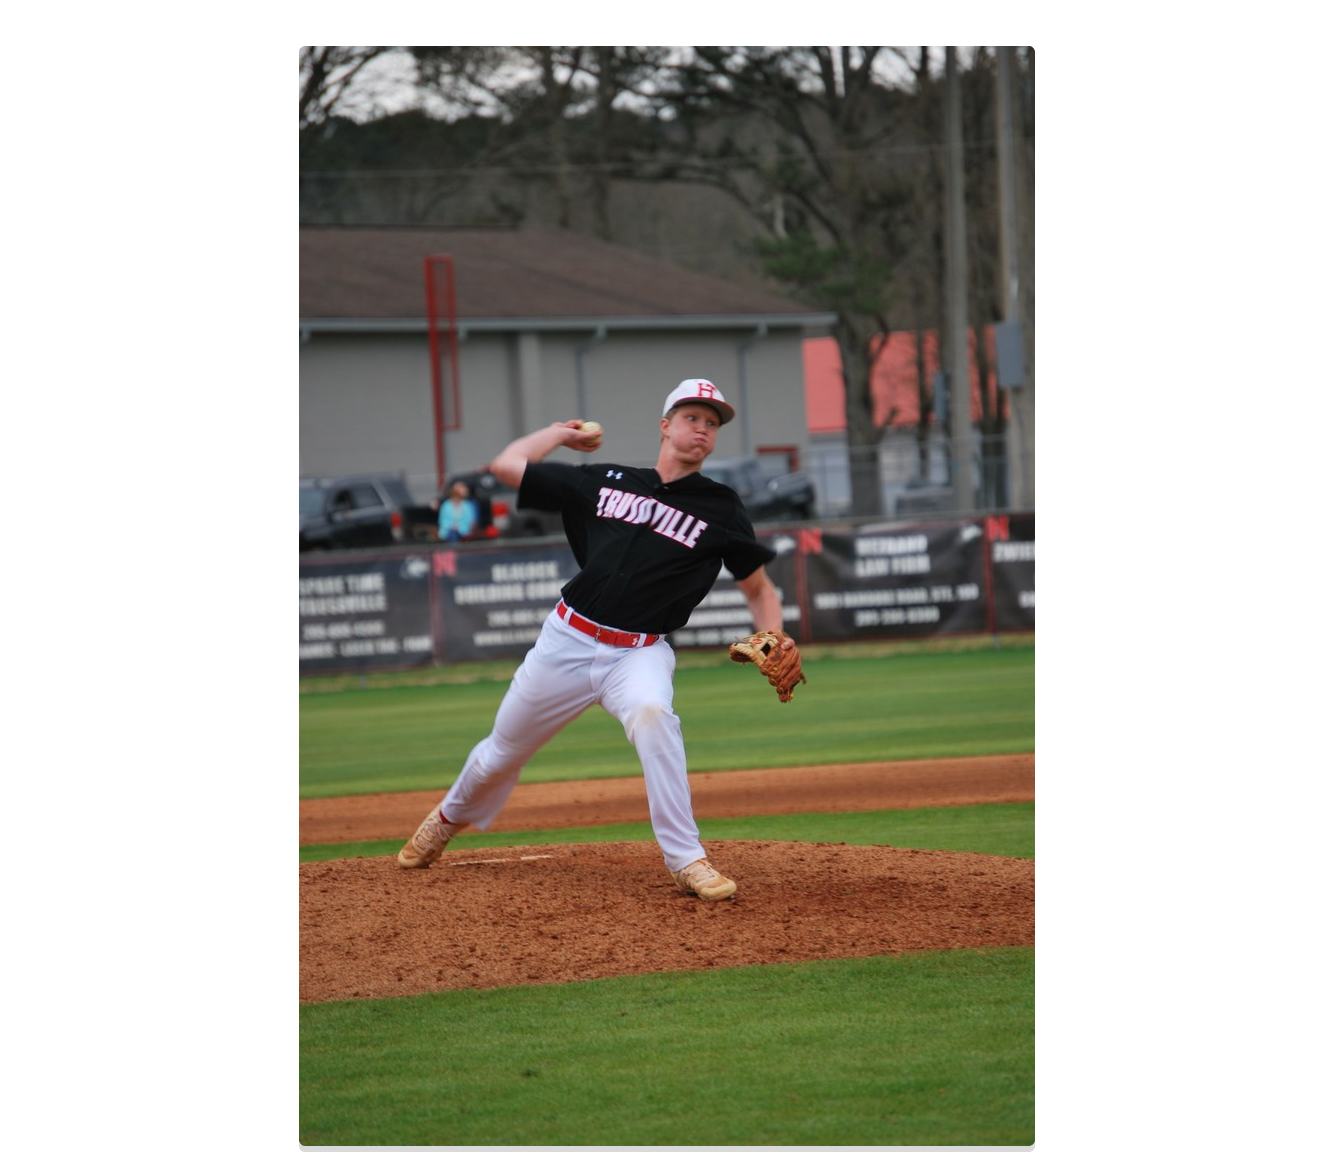 After weekend of wins, Huskies baseball 10-1 for the season